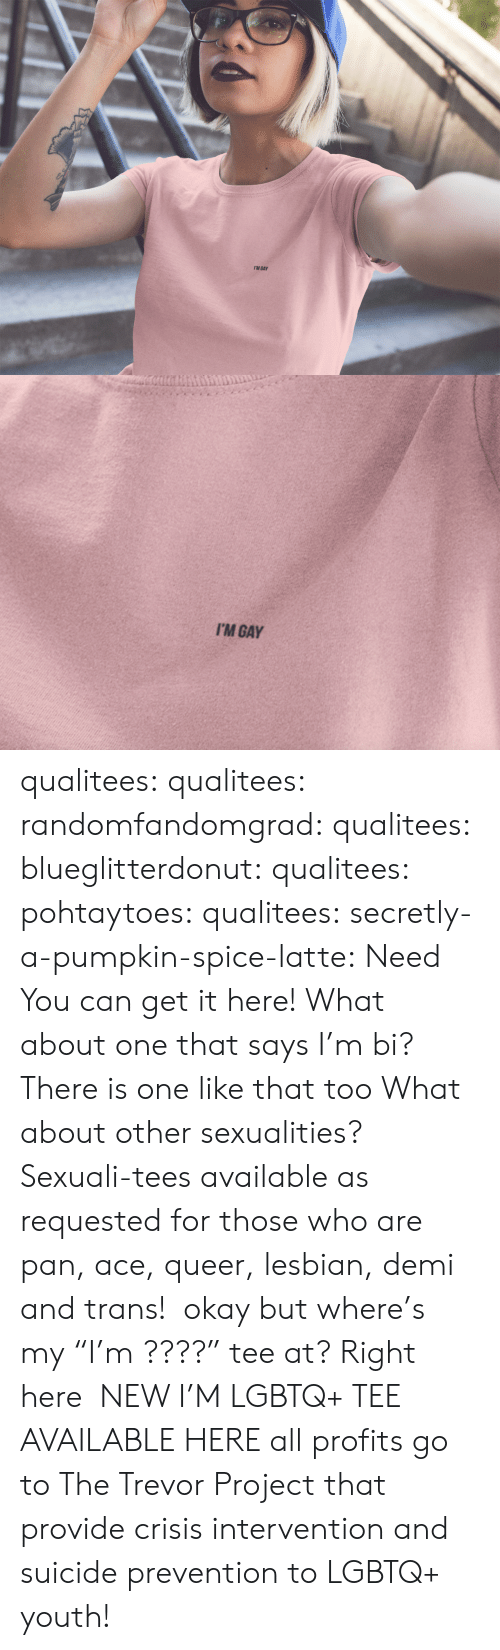 "Tumblr, Blog, and Http: I'M GAY   I'M GAY qualitees:  qualitees: randomfandomgrad:  qualitees:  blueglitterdonut:  qualitees:   pohtaytoes:  qualitees:   secretly-a-pumpkin-spice-latte: Need You can get it here!   What about one that says I'm bi?  There is one like that too   What about other sexualities?  Sexuali-tees available as requested for those who are pan, ace, queer, lesbian, demi and trans!   okay but where's my ""I'm ????"" tee at?  Right here   NEW I'M LGBTQ+ TEE AVAILABLE HERE all profits go to The Trevor Project that provide crisis intervention and suicide prevention to LGBTQ+ youth!"